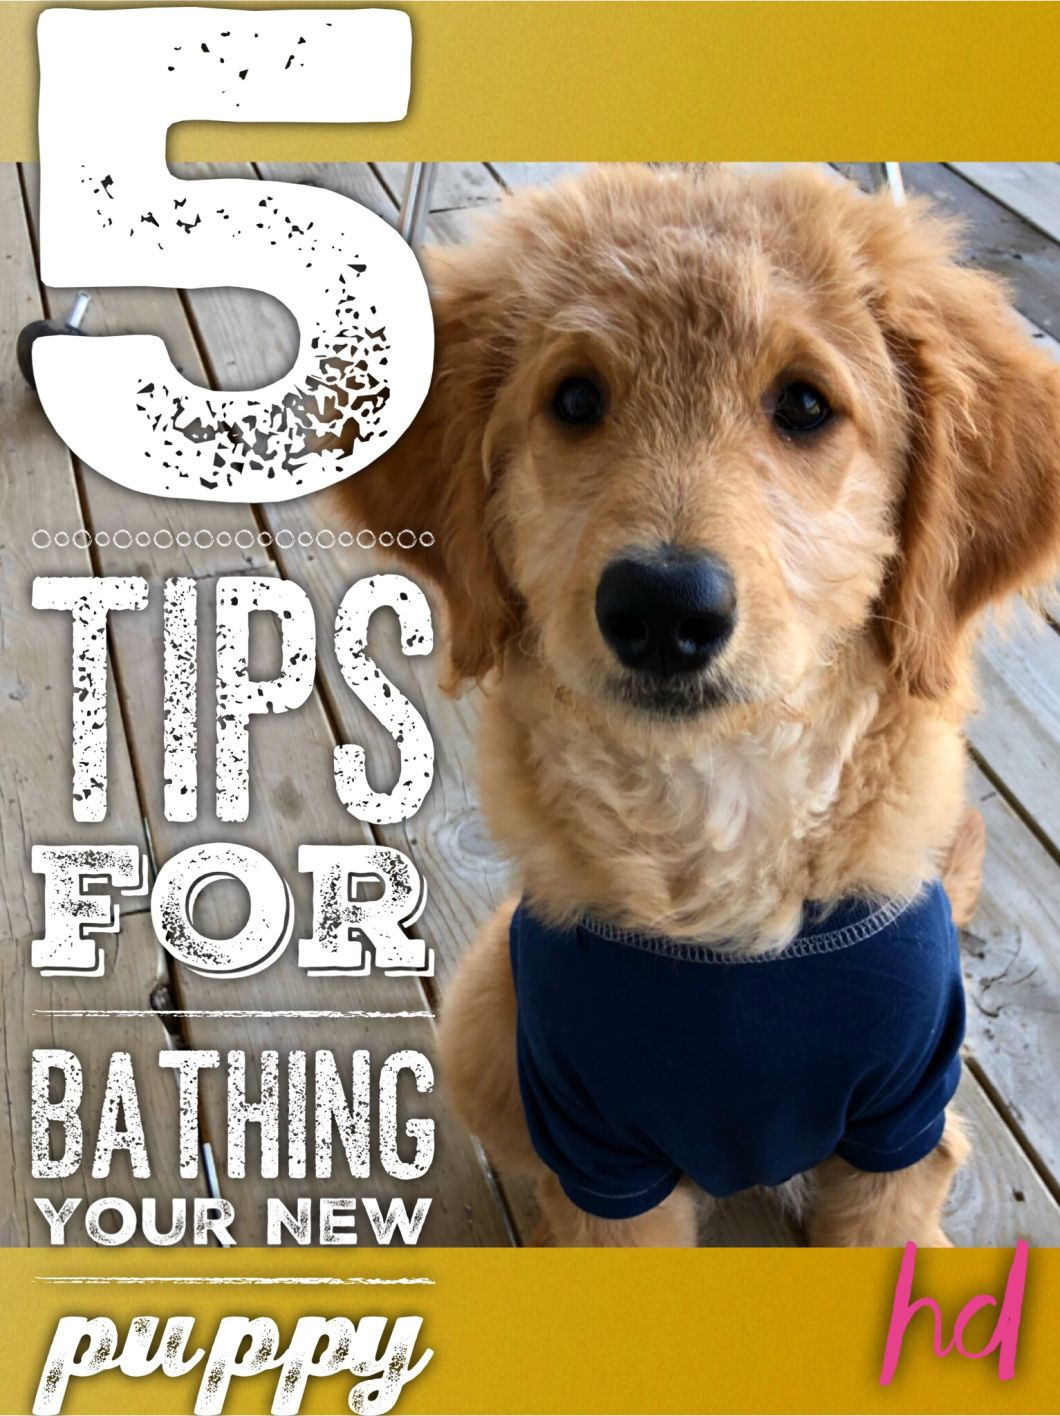 How I Settled My Puppy Down For Bath Hereforddoodles Puppies